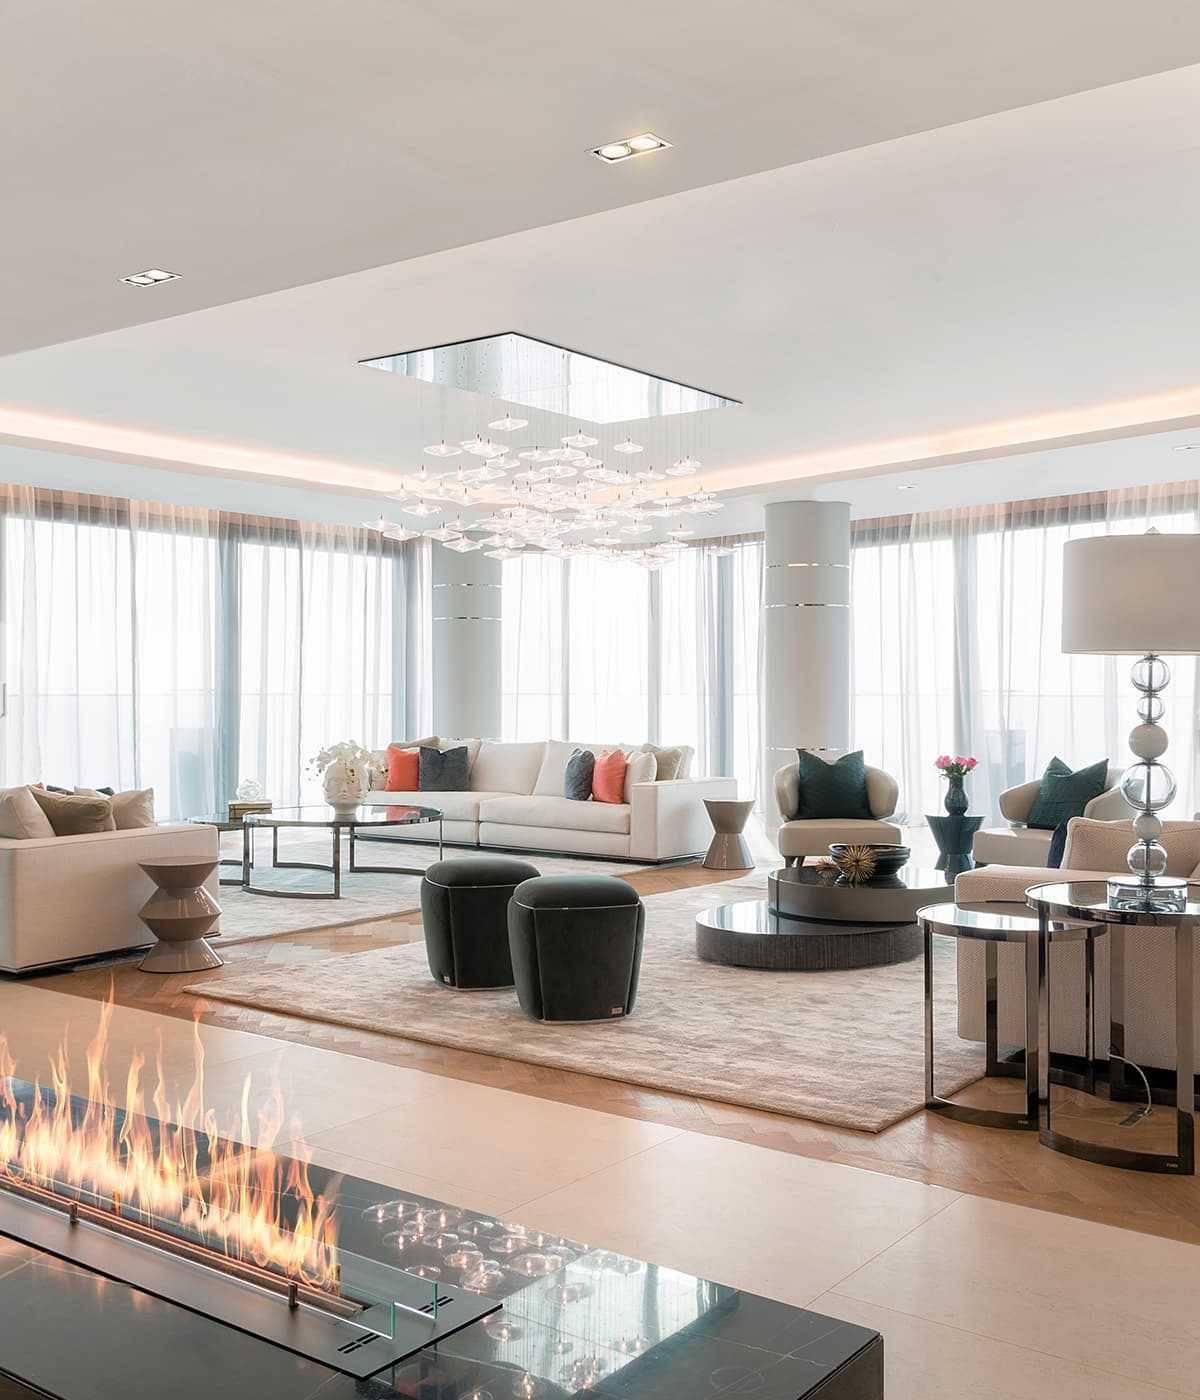 The interior of a luxury waterfront penthouse in Dubai